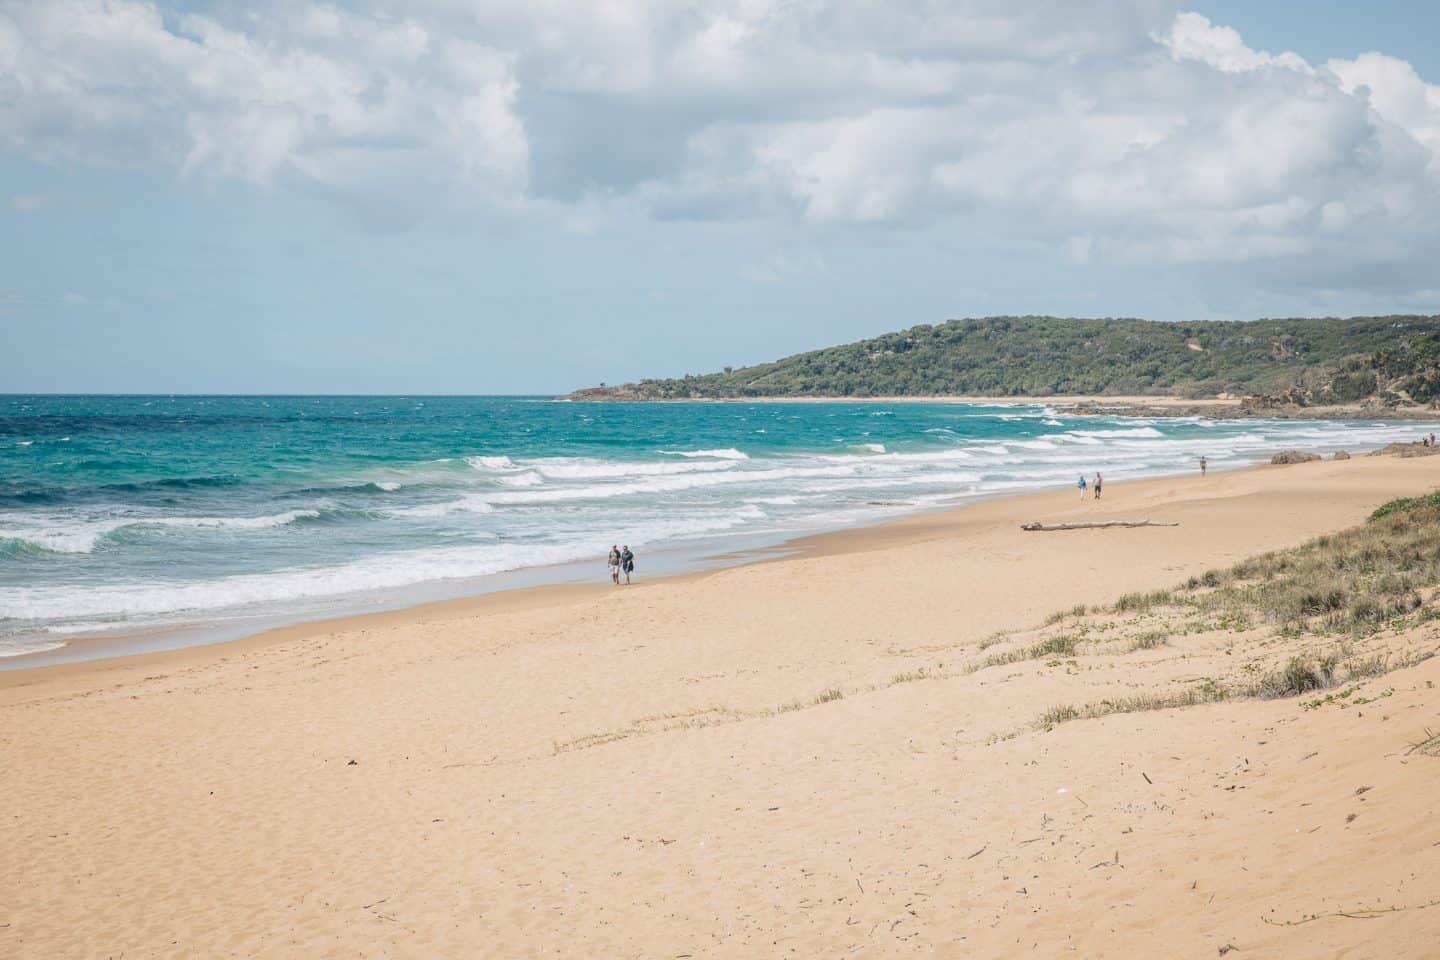 agnes water, agnes waters, things to do in agnes waters, hings to do in agnes water, surfing agnes water, seventeen seventy queensland, seventeen seventy camping, seventeen seventy australia, seventeen seventy, agnes waters things to do, agnes waters map, agnes waters caravan park, agnes waters beach, agnes waters accommodation, agnes water surfing, agnes water surf cam, agnes water queensland, agnes water qld, agnes water caravan park, agnes water camping, agnes water beach, camping ground agnes water, chinamans beach agnes water